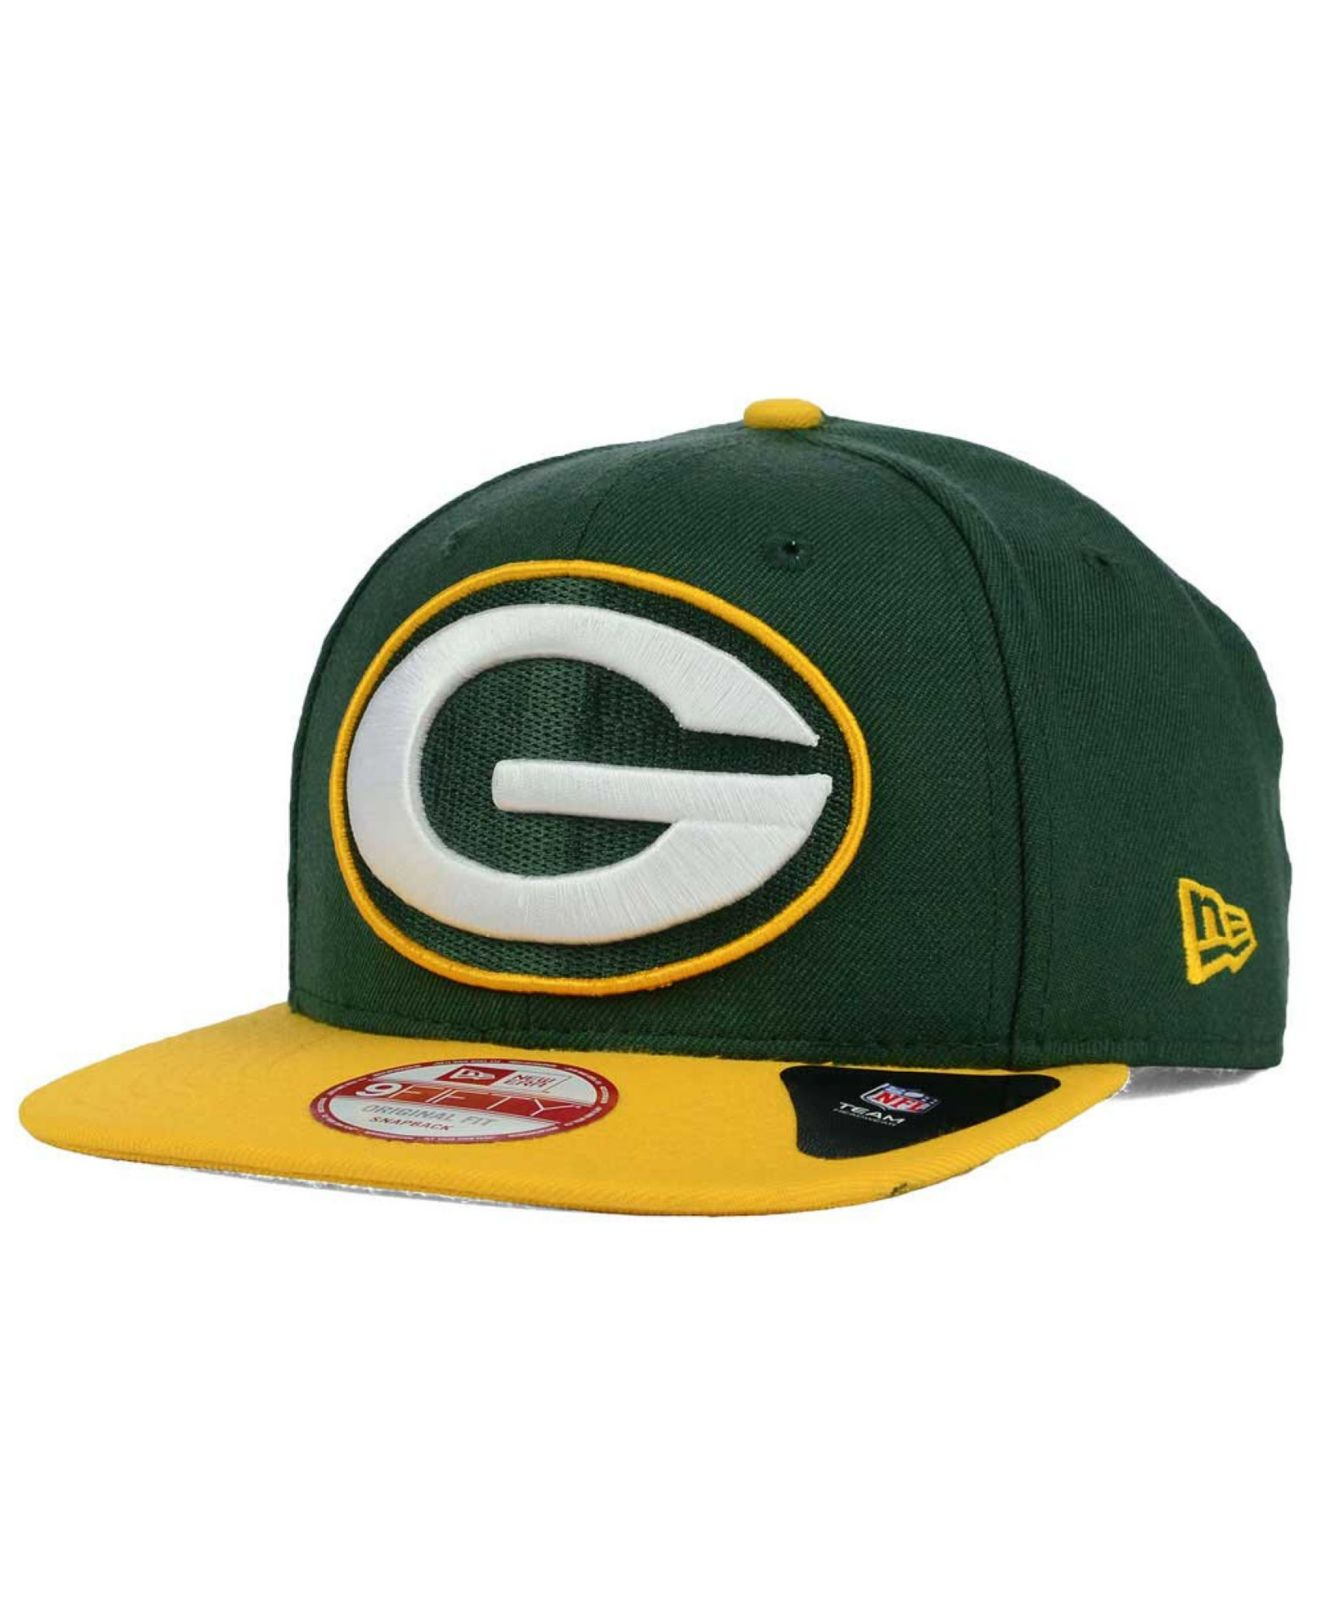 New Era Green Bay Packers Two Tone 59fifty Fitted Hat